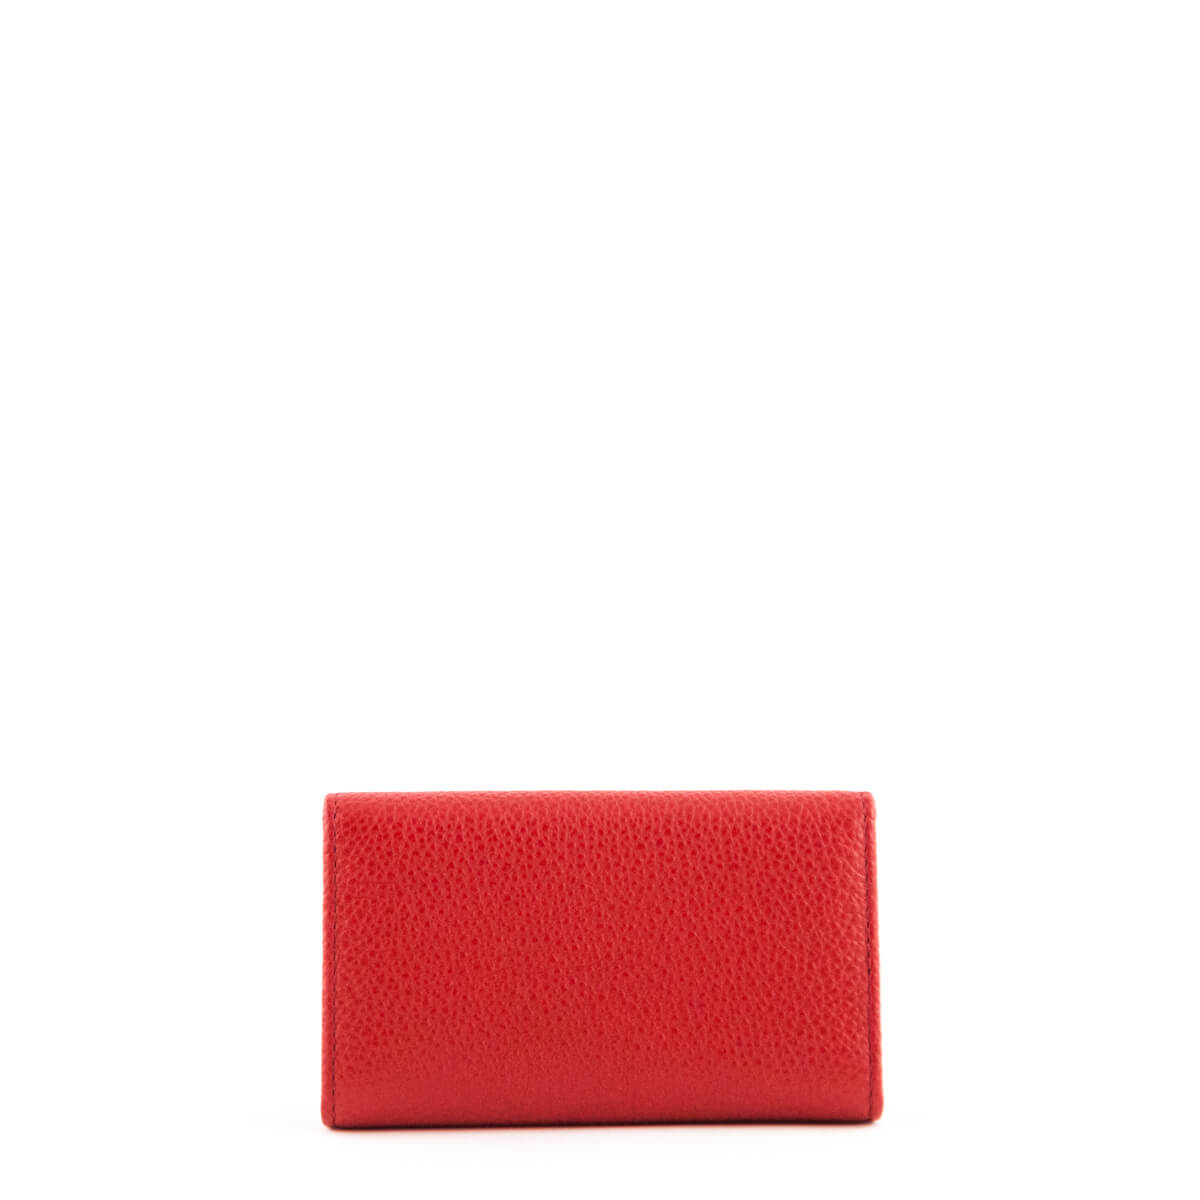 d64bedaa7bdd00 ... Prada Red Vitello Grain Key Holder - LOVE that BAG - Preowned Authentic  Designer Handbags ...